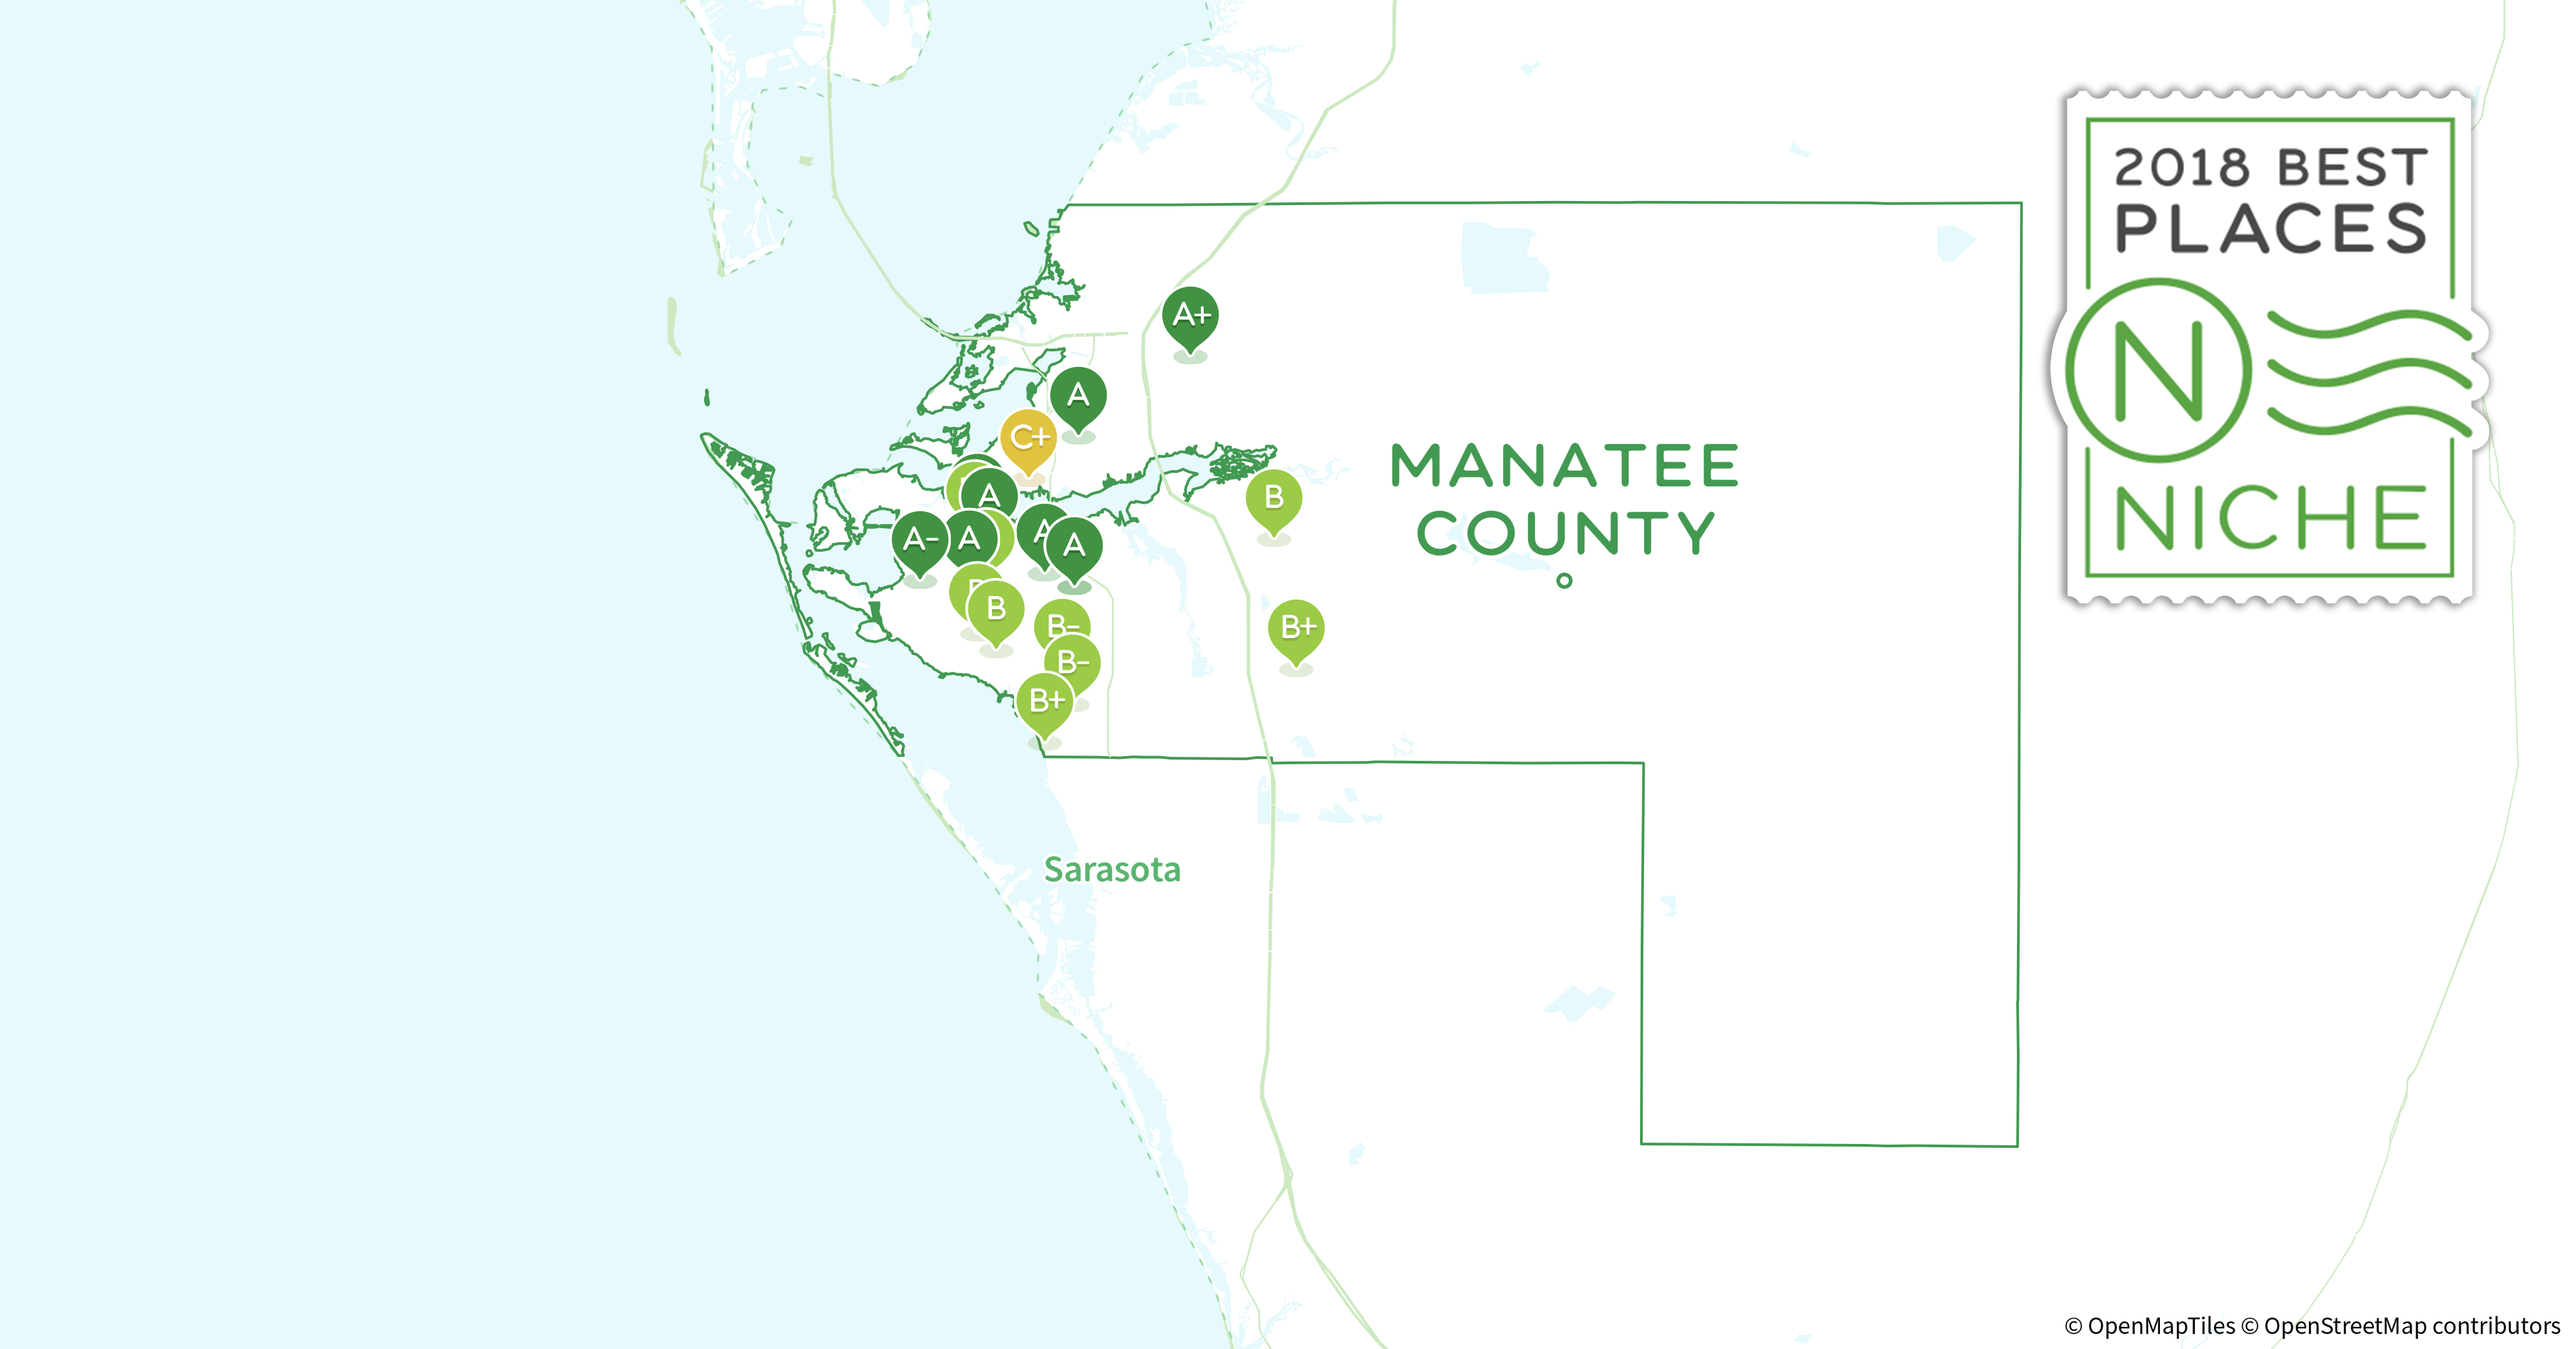 Florida Map Of Counties.2018 Best Places To Live In Manatee County Fl Niche